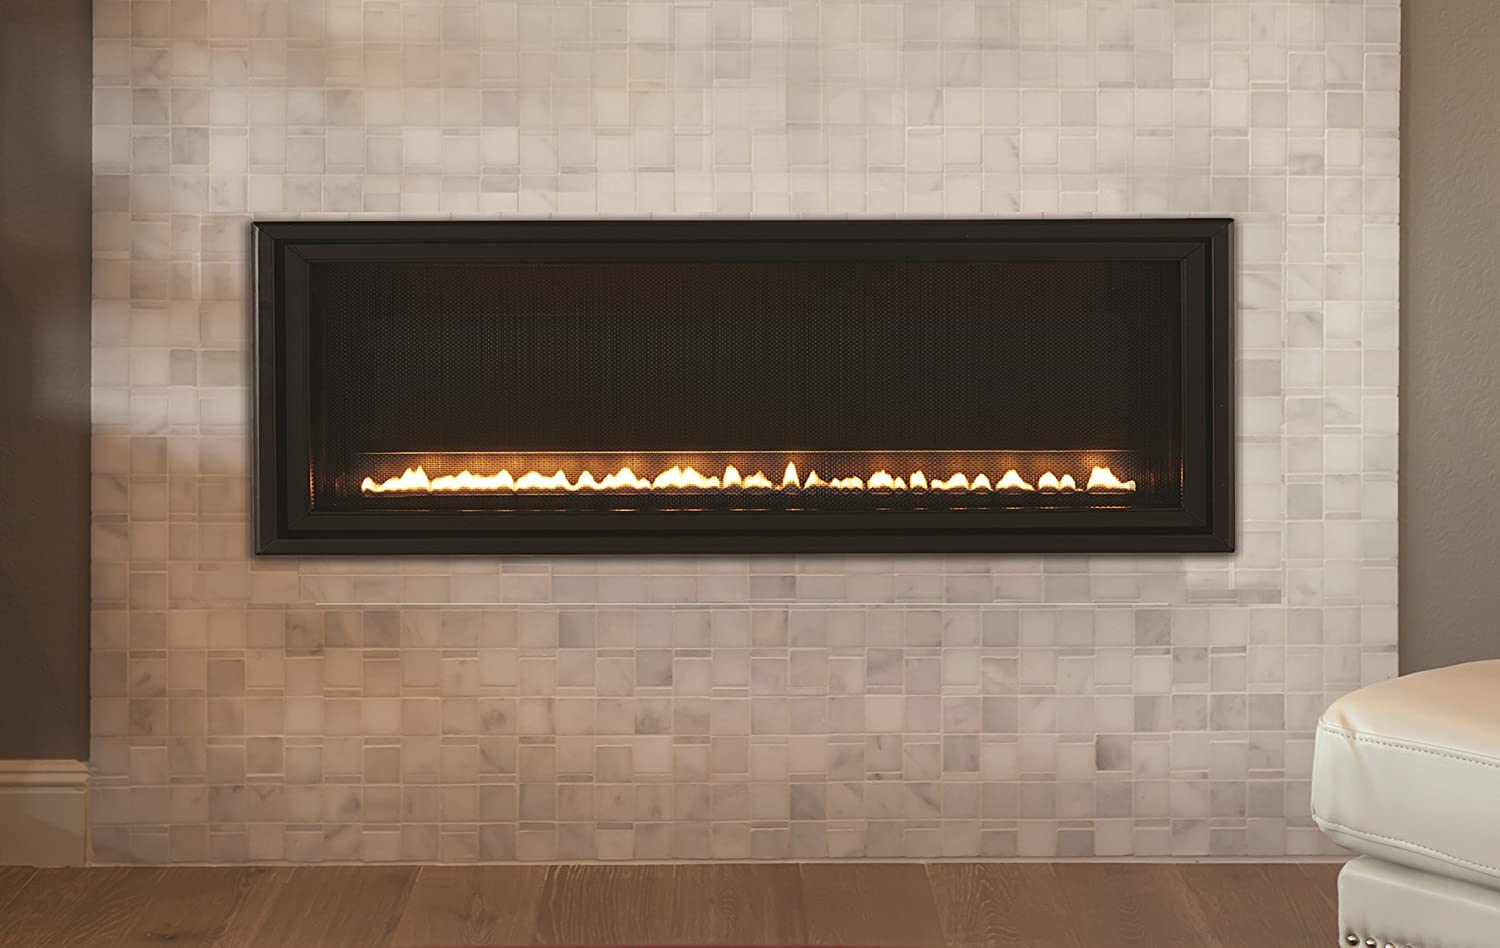 Buy American Hearth Boulevard 48 Linear Vent Free Fireplace: Tools & Home Improvement - Amazon.com ? FREE DELIVERY possible on eligible purchases